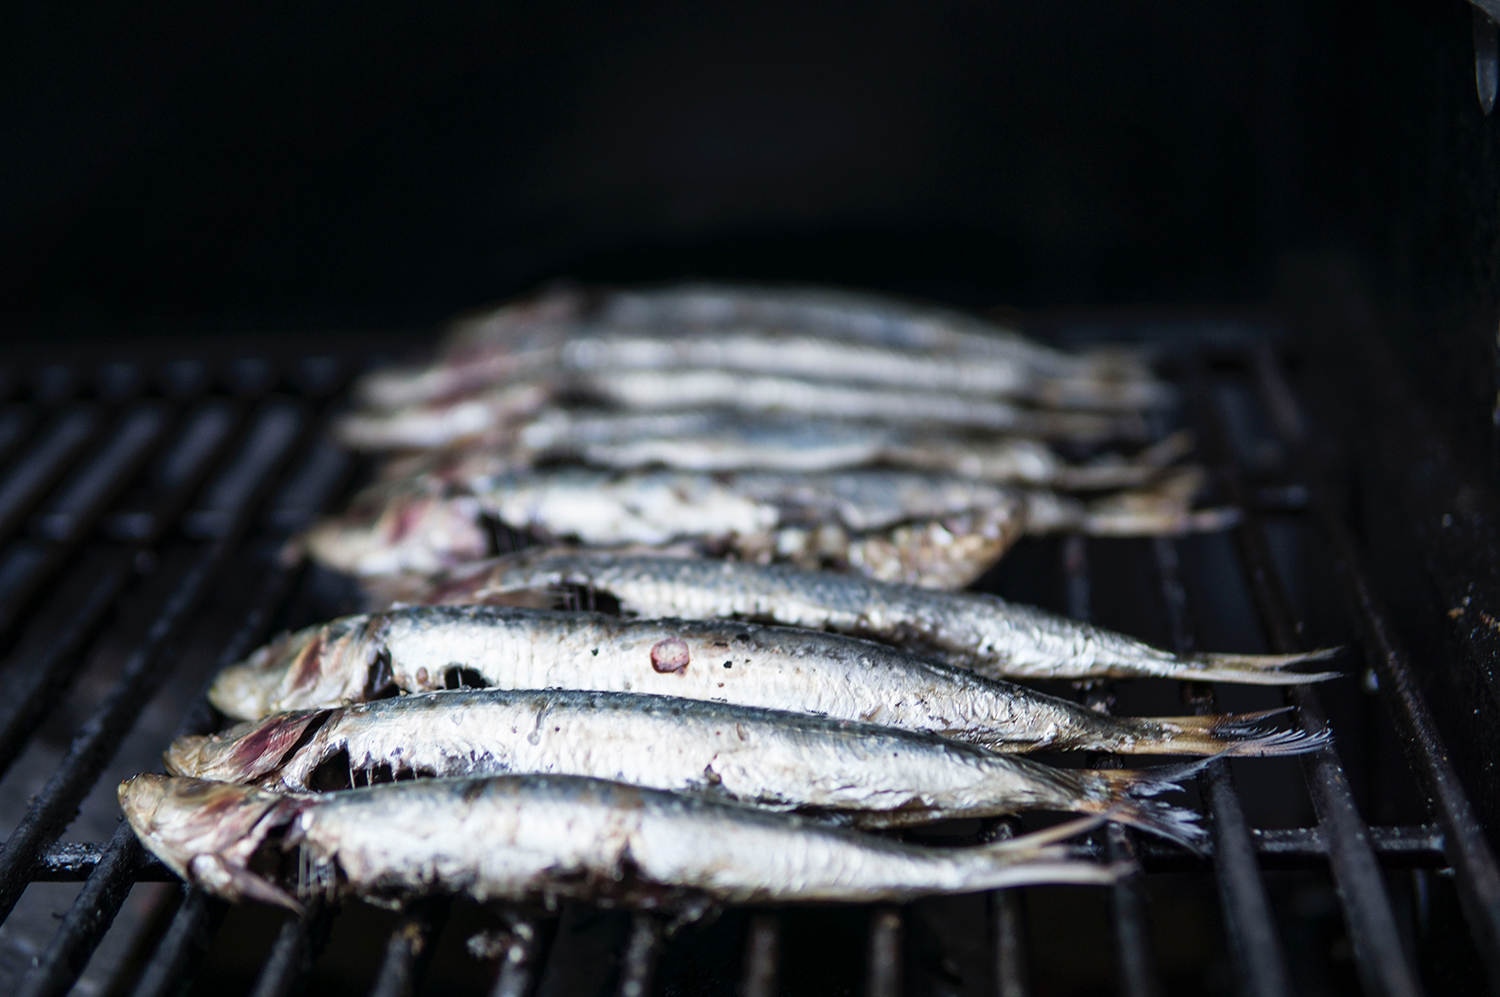 Sardines are rich in omega-3 fats, which are anti-inflammatory and inhibit the growth of cancer.